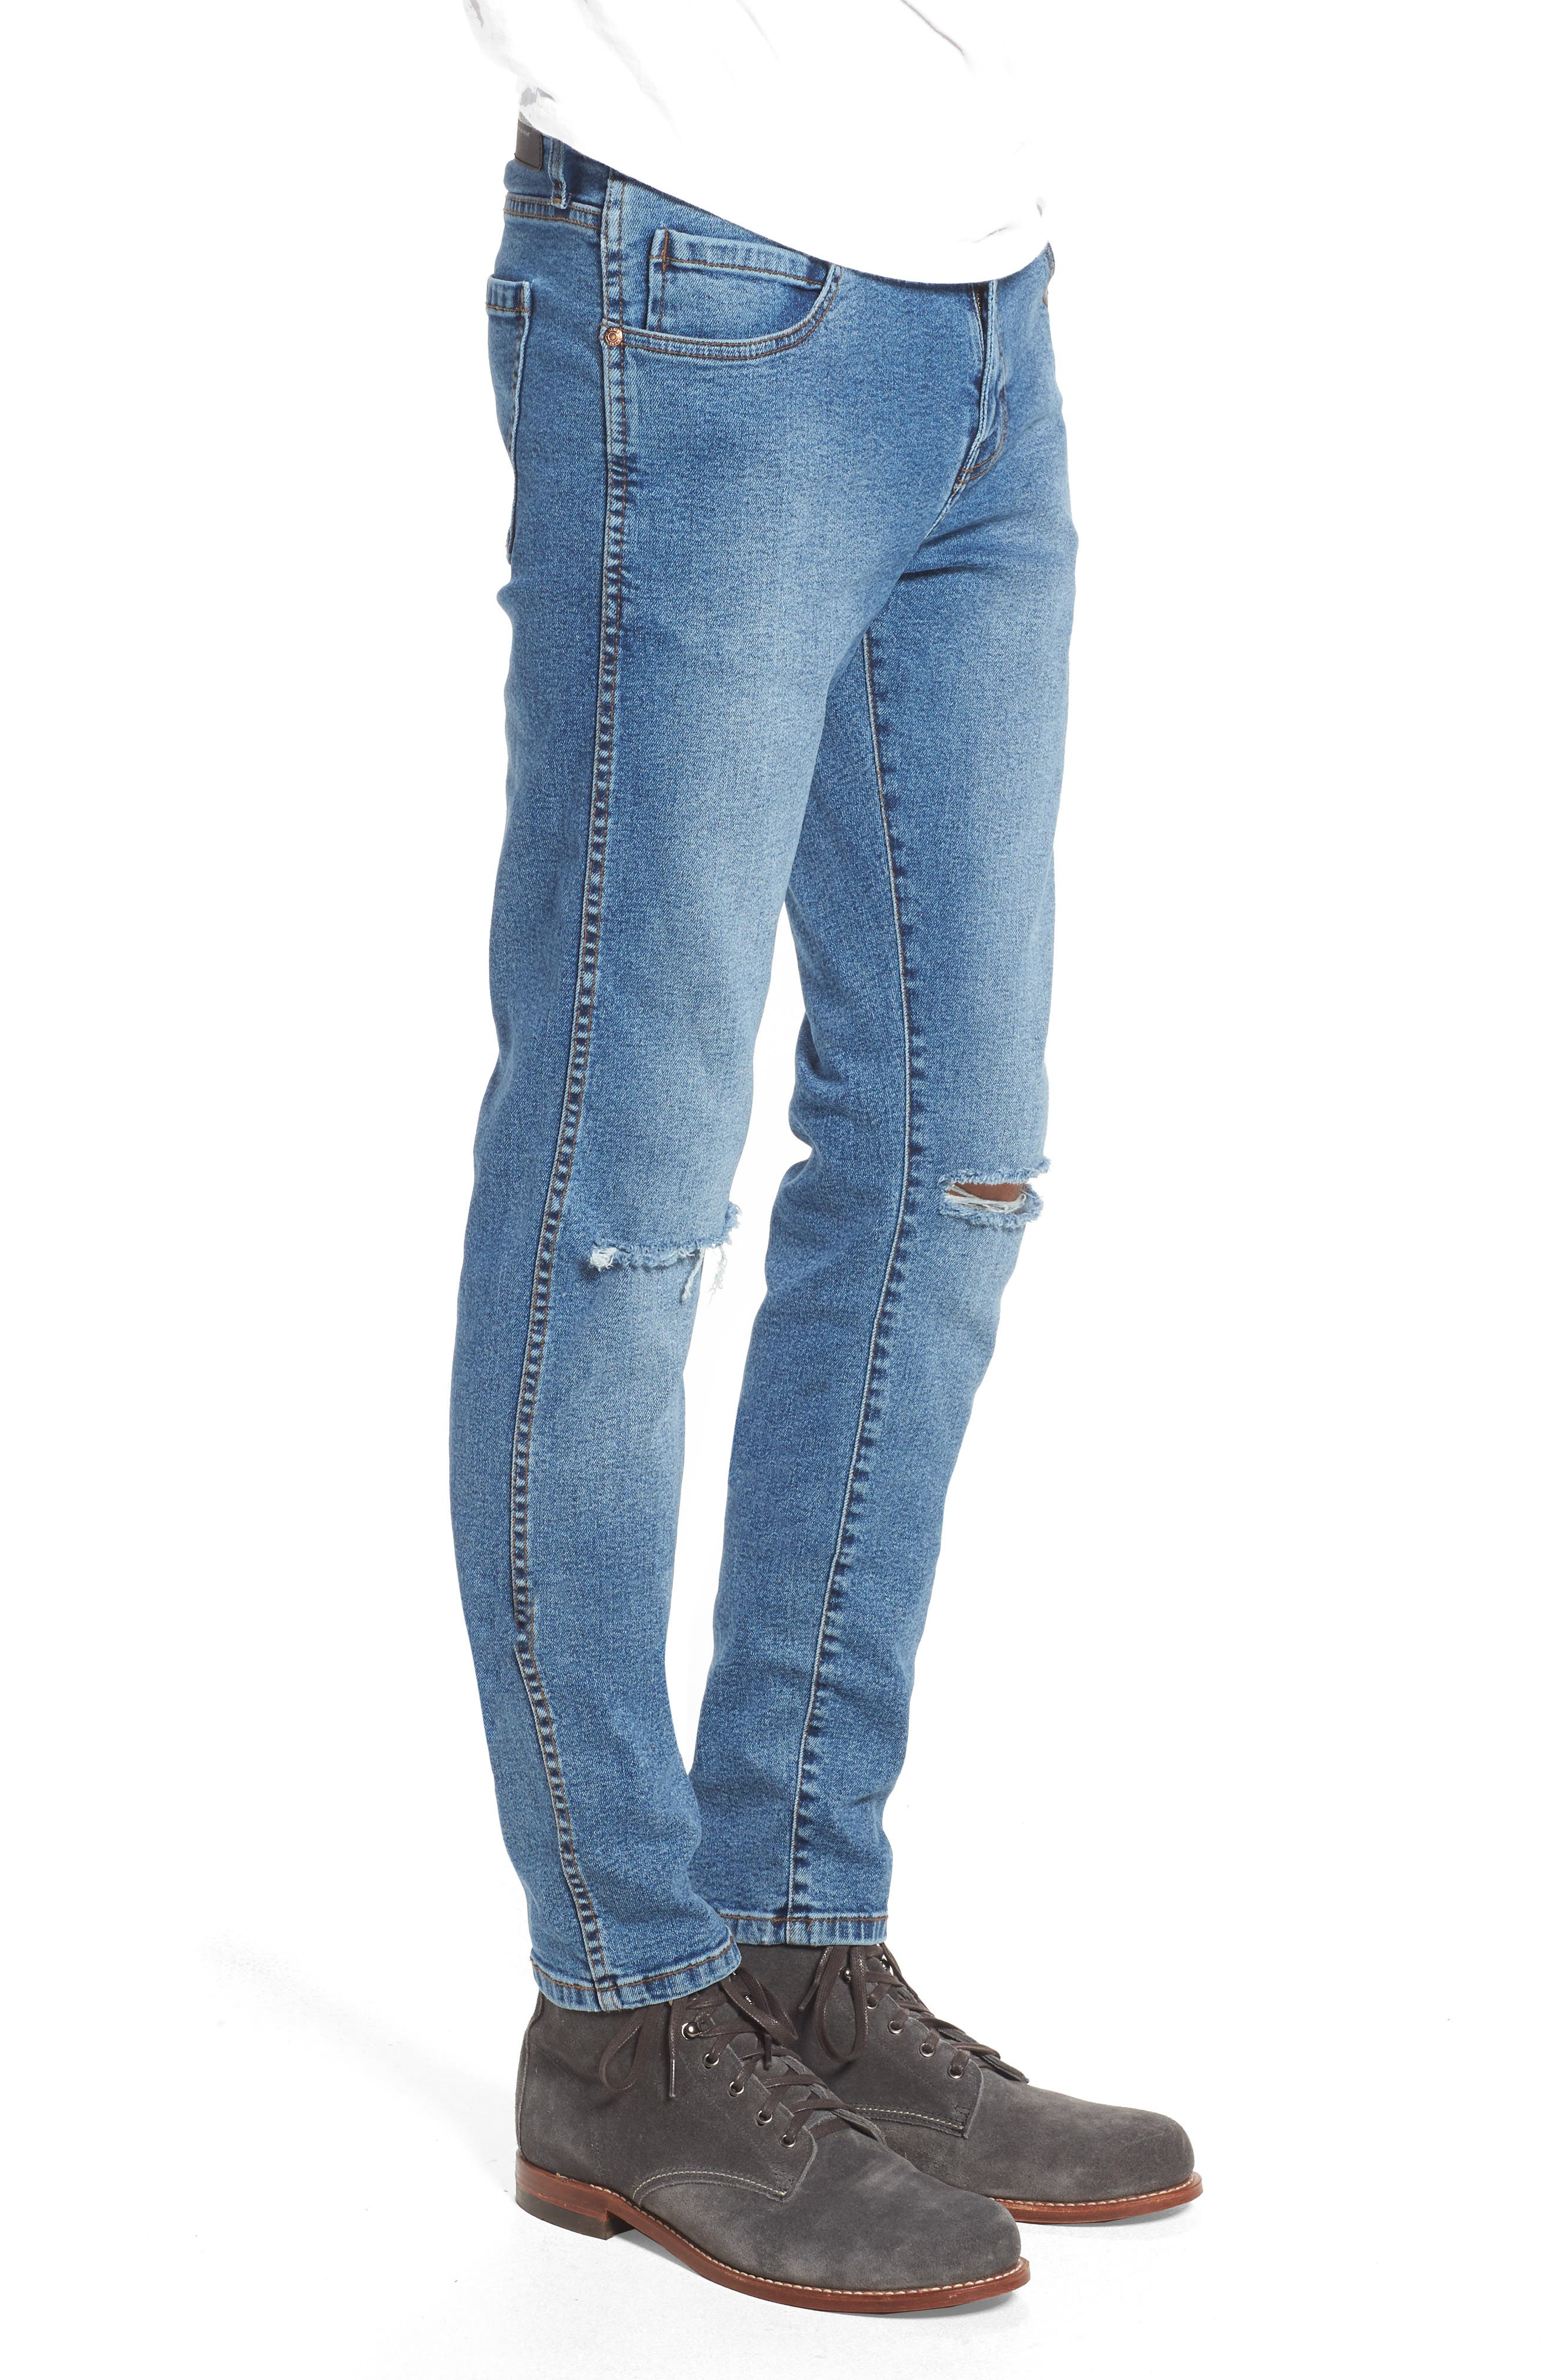 Snap Skinny Fit Jeans,                             Alternate thumbnail 3, color,                             Light Stone Destroyed